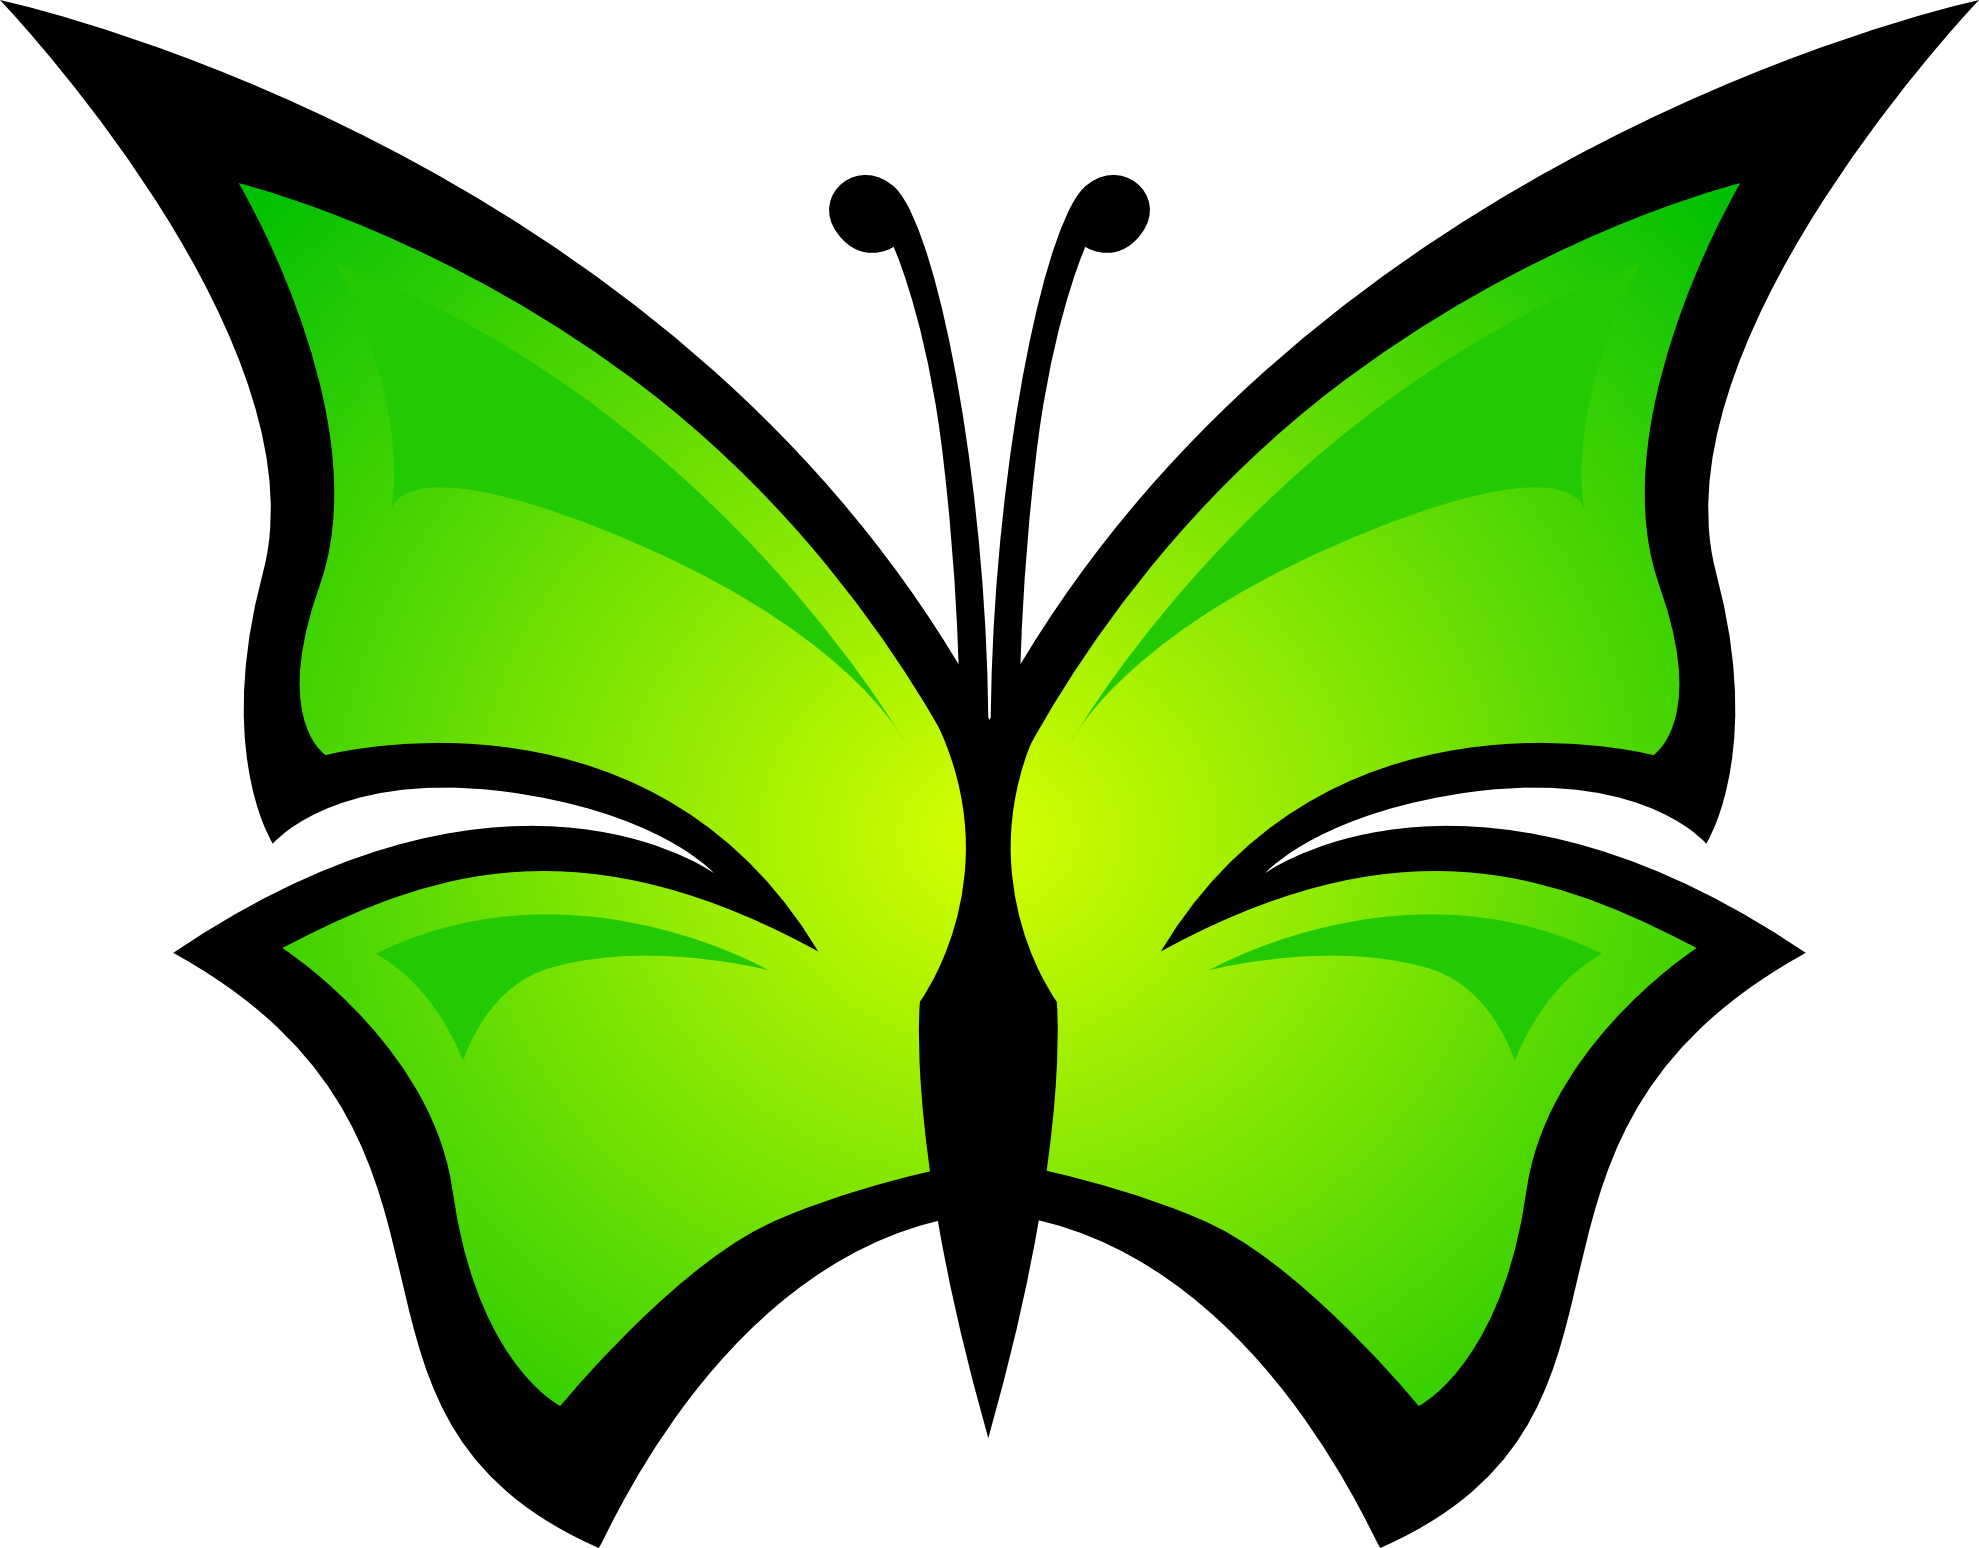 Png image free picture. Butterfly clipart light green